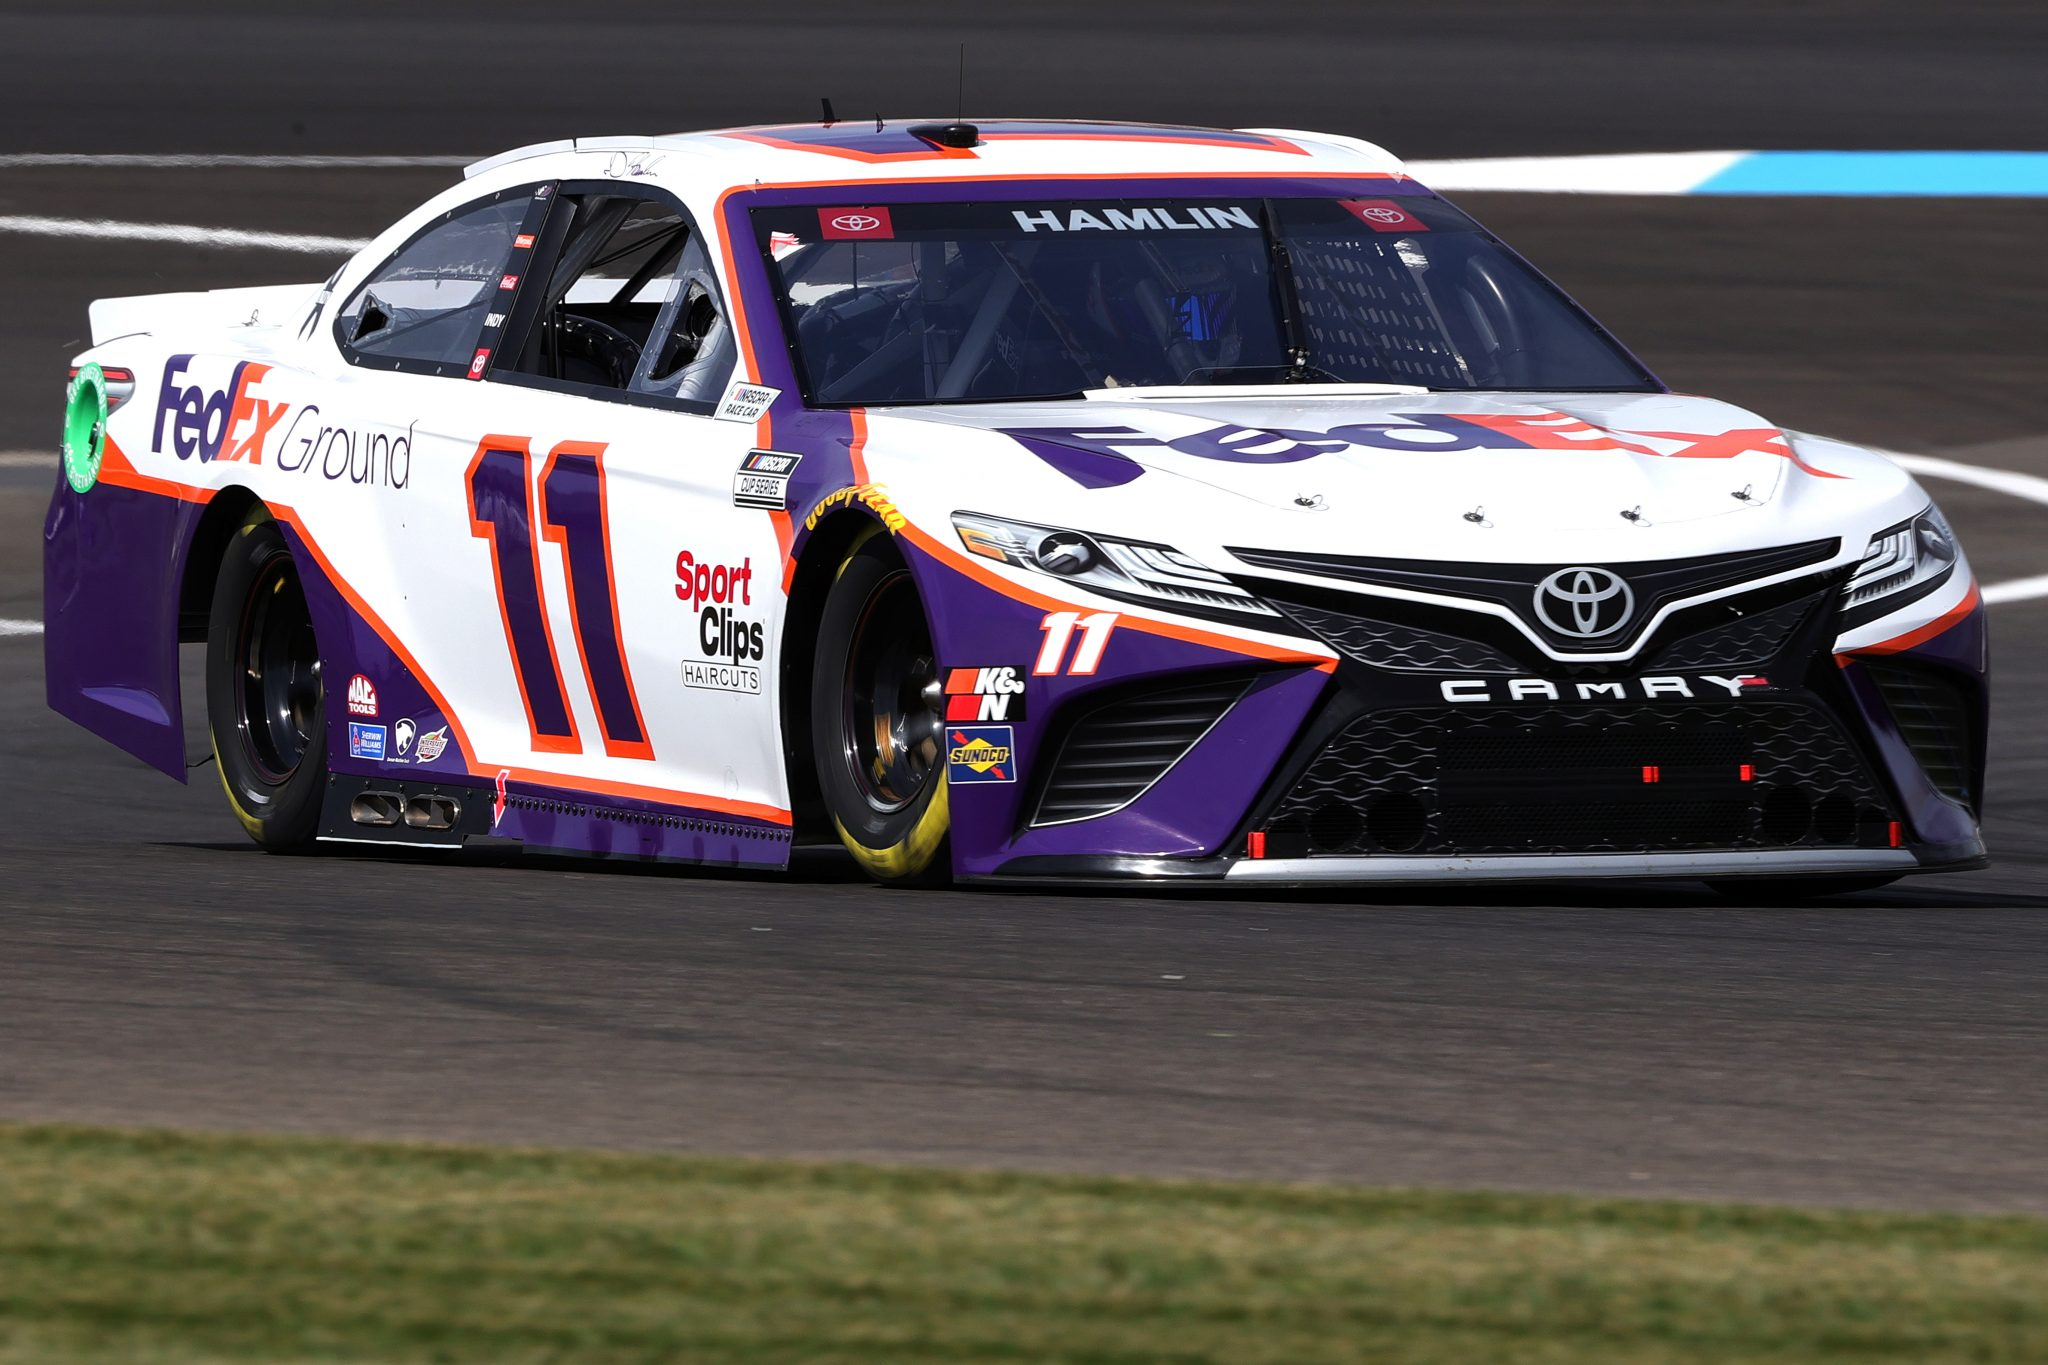 INDIANAPOLIS, INDIANA - AUGUST 14: Denny Hamlin, driver of the #11 FedEx Ground Toyota, drives during practice for the NASCAR Cup Series Verizon 200 at the Brickyard at Indianapolis Motor Speedway on August 14, 2021 in Indianapolis, Indiana. (Photo by Stacy Revere/Getty Images)   Getty Images